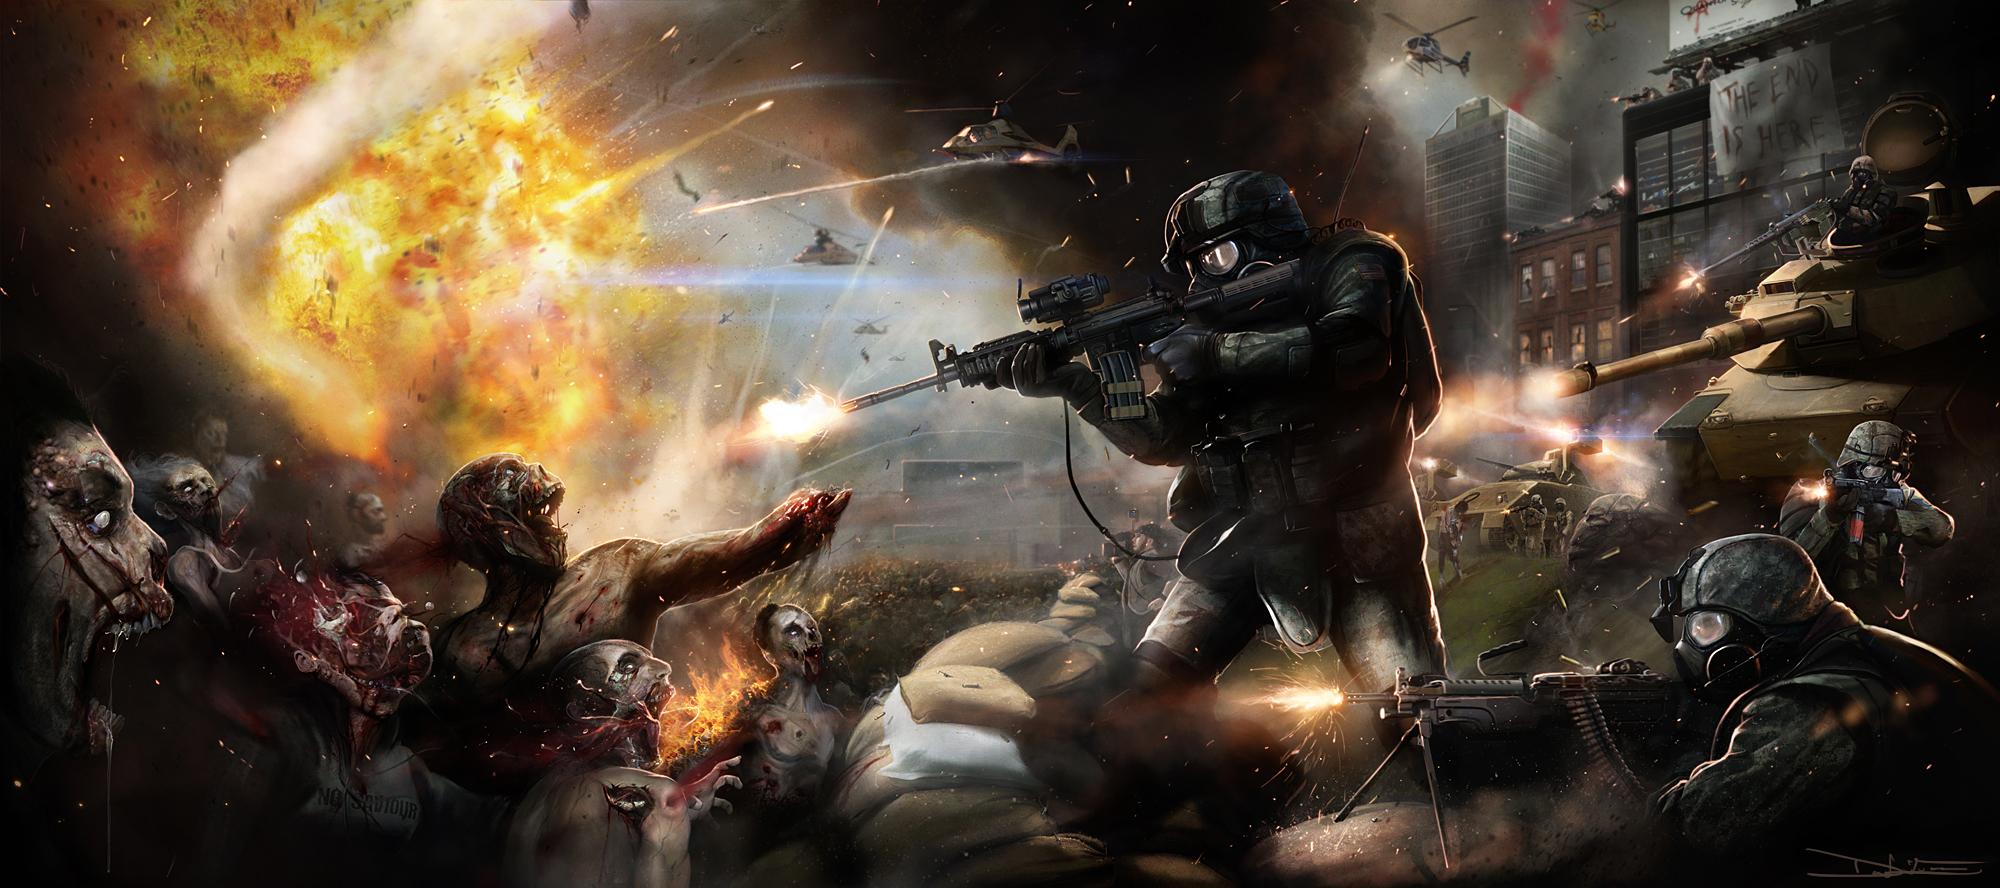 Awesome Military Wallpaper Background 31243 2000x888